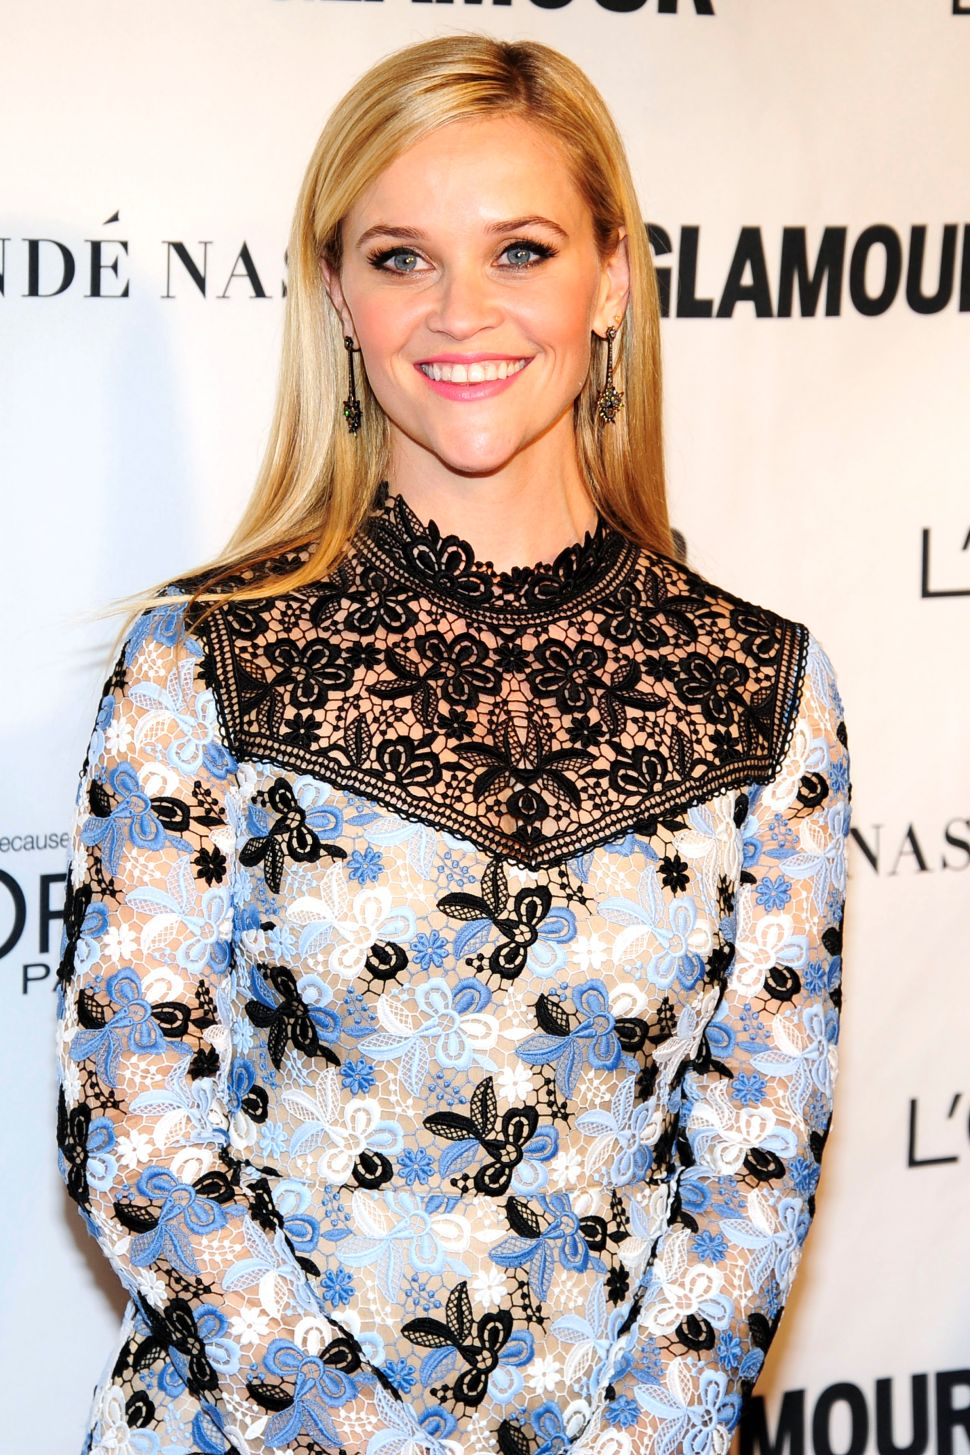 Reese Witherspoon (Photo: Paul Bruinooge for Patrick McMullan).